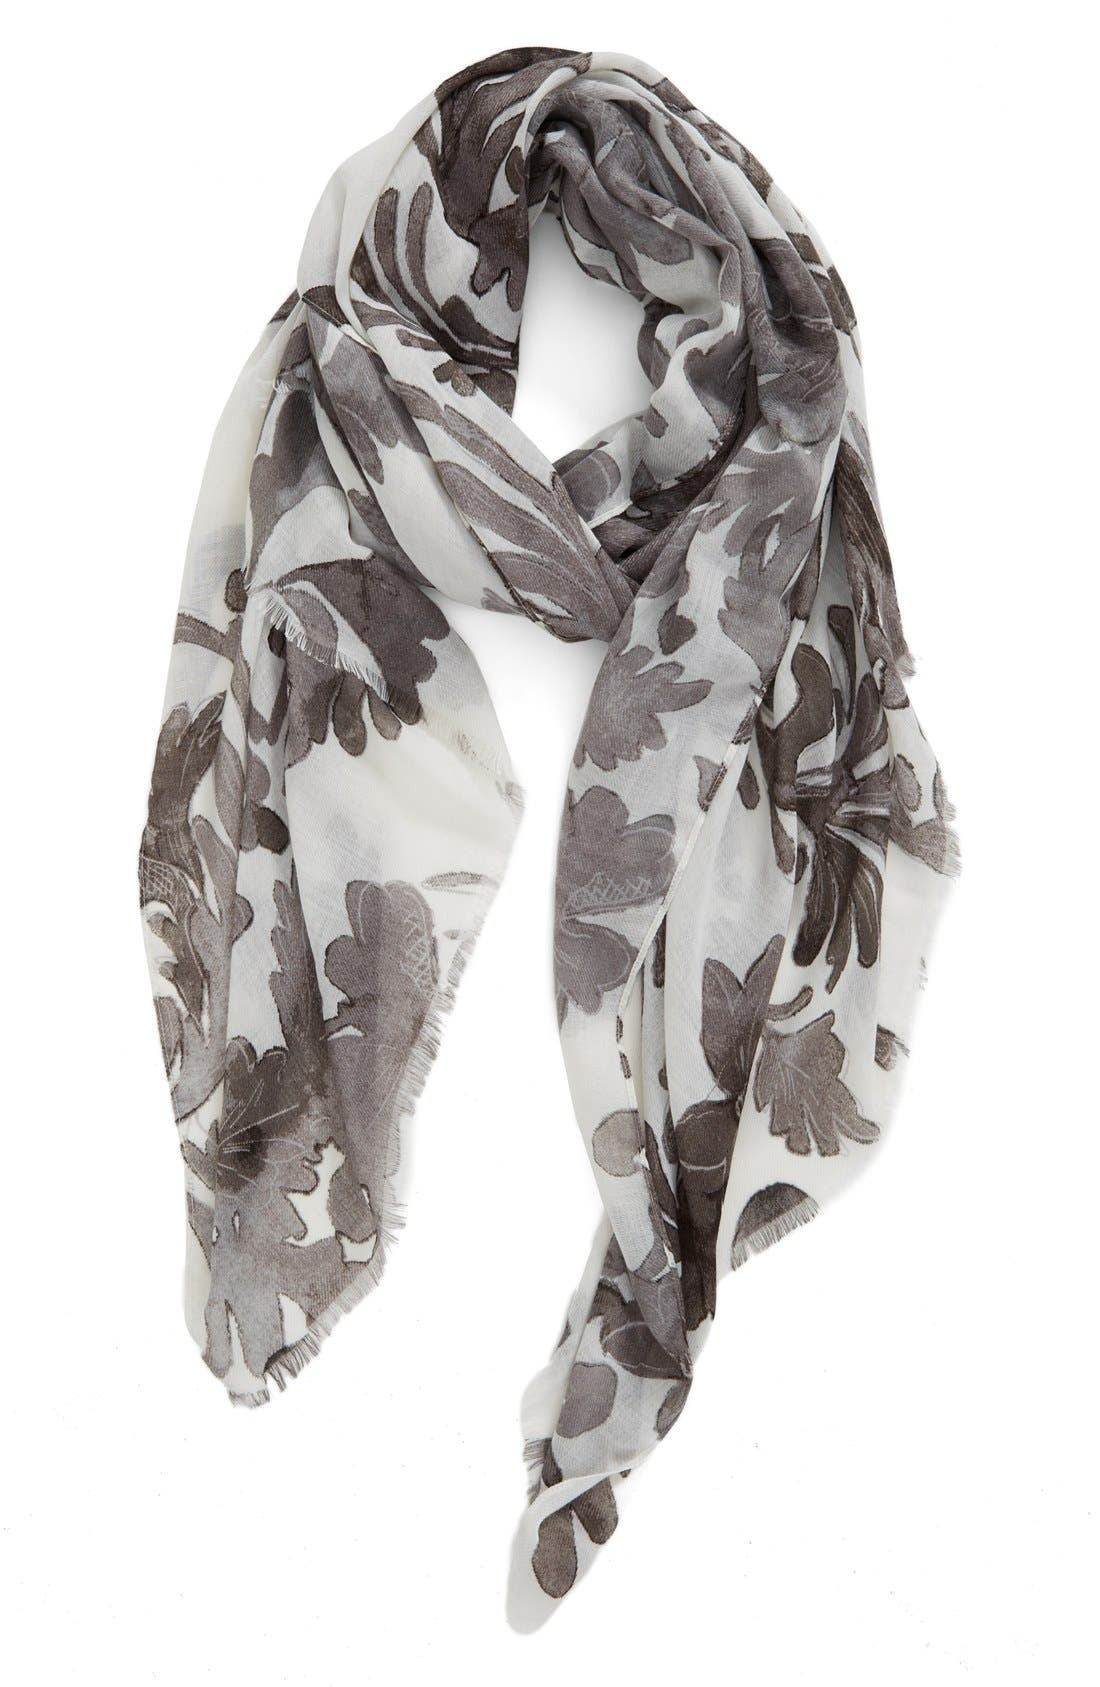 NORDSTROM, 'Antique Damask' Print Scarf, Main thumbnail 1, color, 030